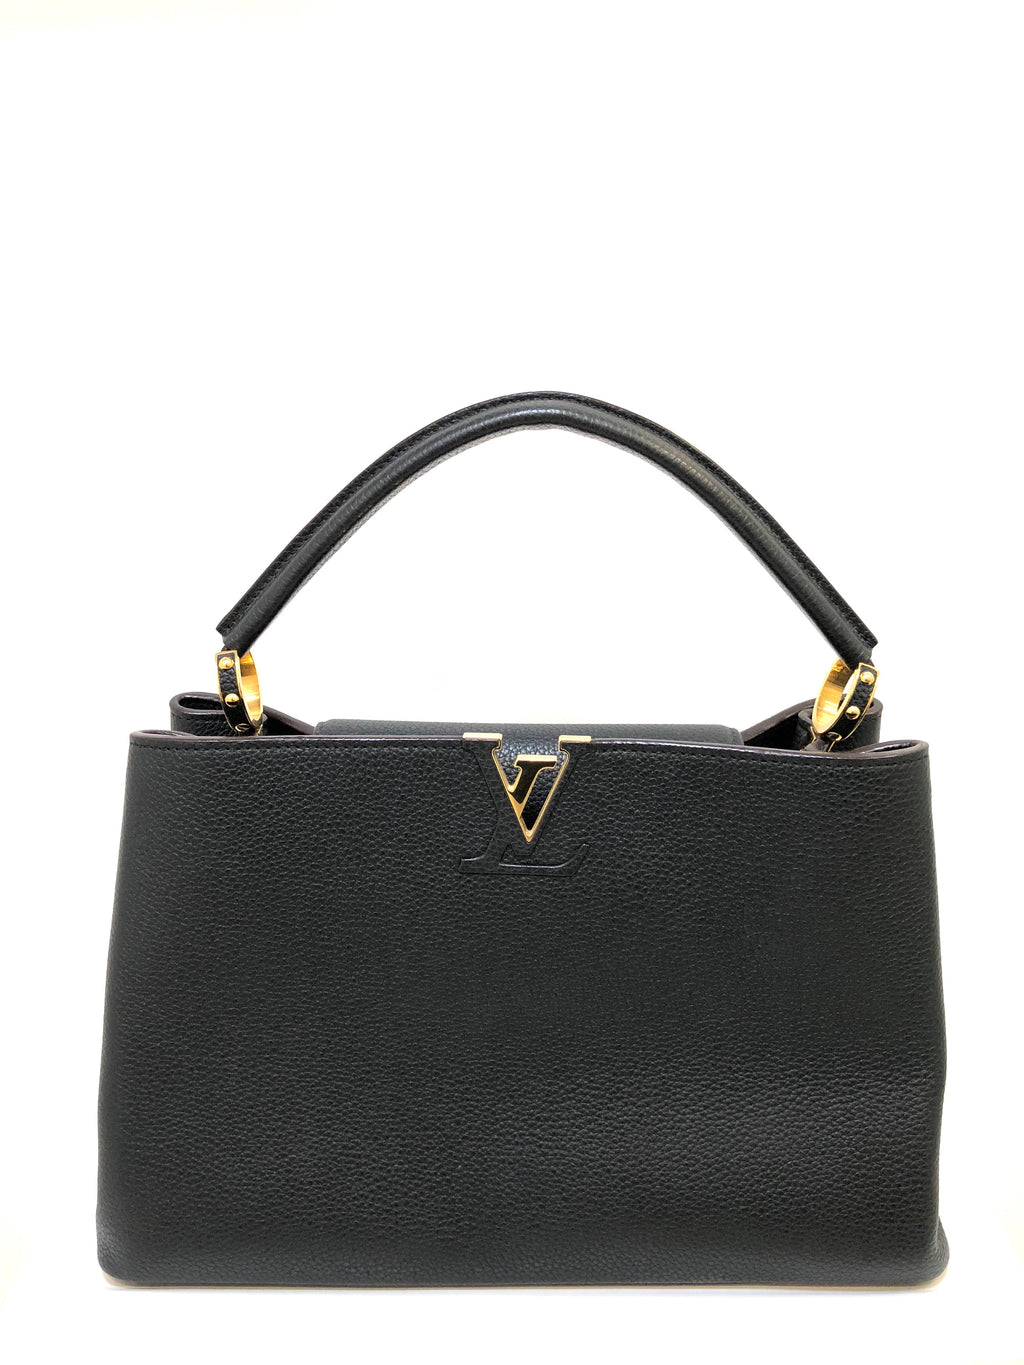 Louis Vuitton Black Leather Capucines GM Handbag